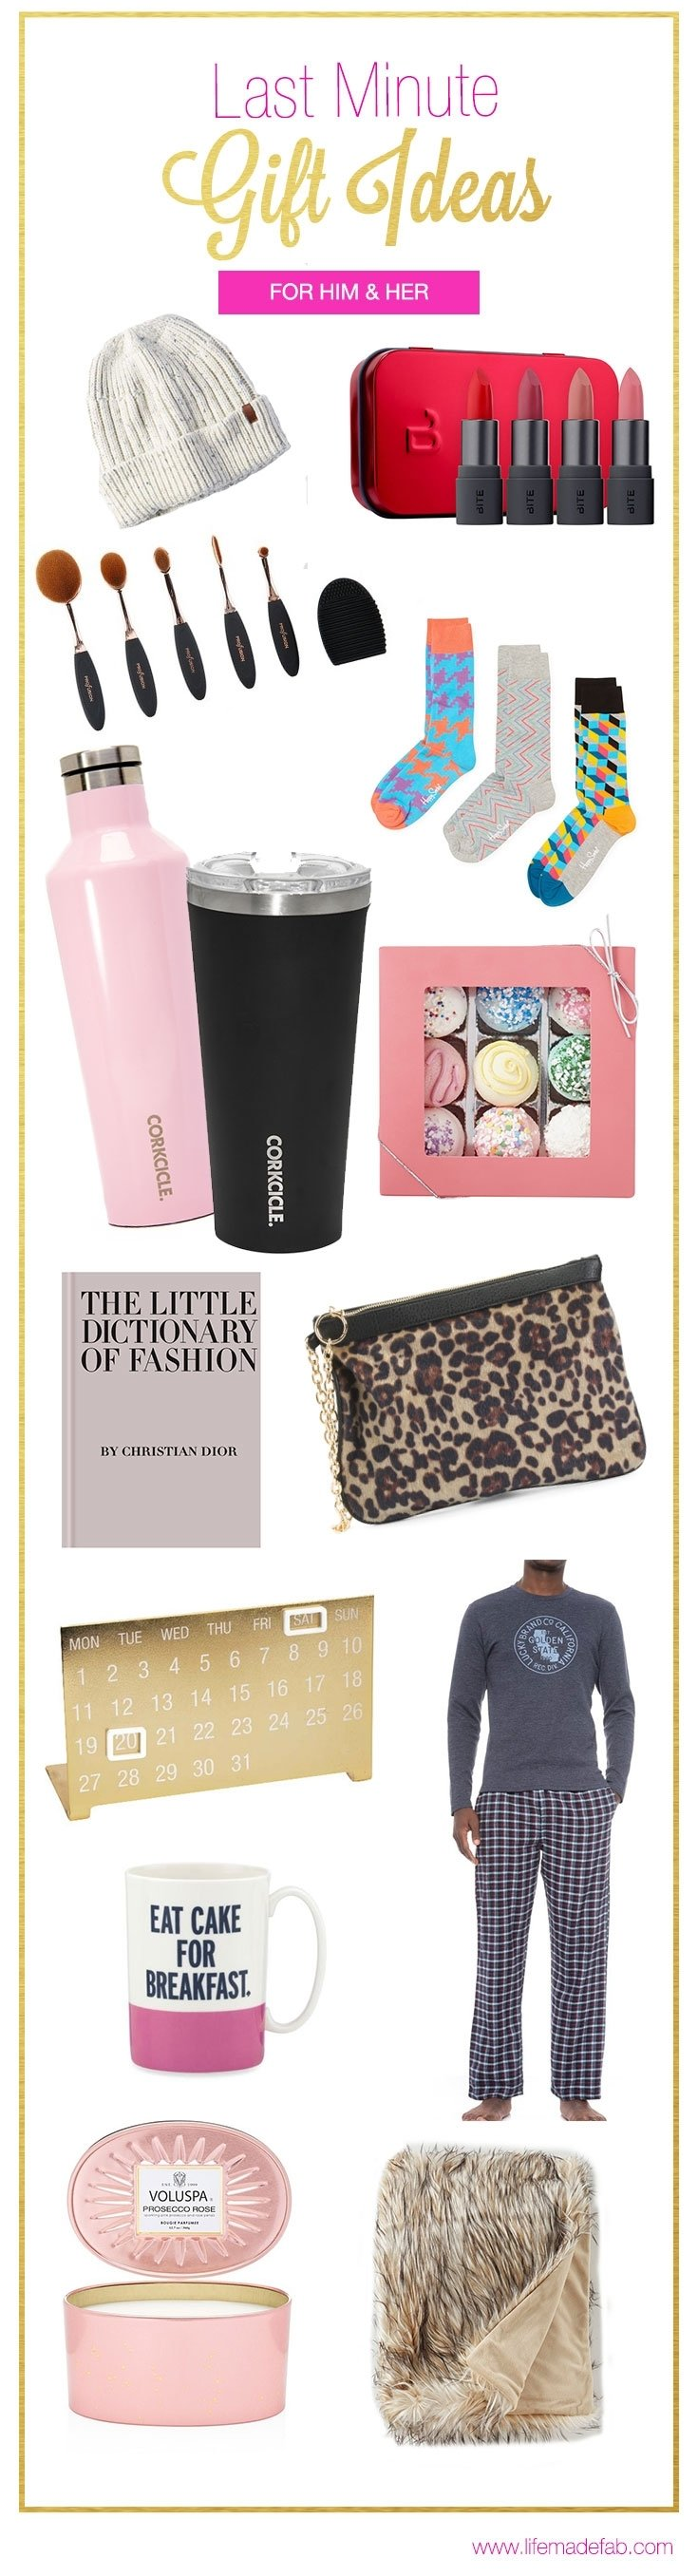 10 Amazing Last Minute Gift Ideas For Her last minute gift ideas for him and her but mostly her life